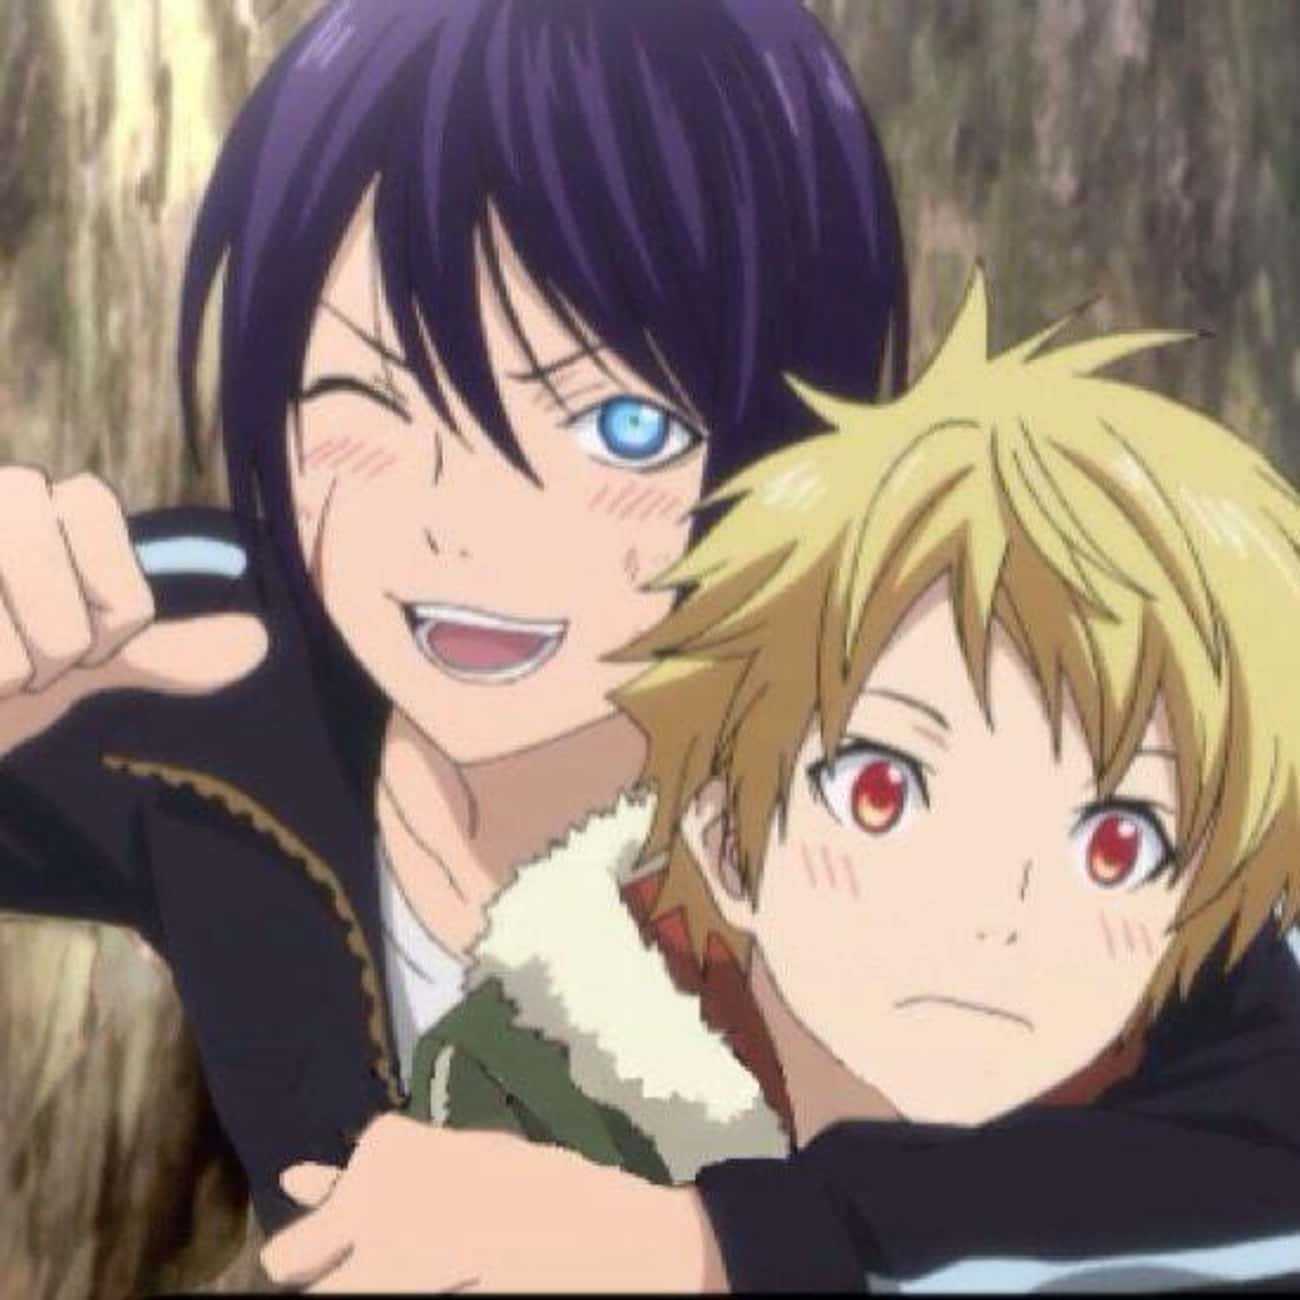 Noragami is listed (or ranked) 3 on the list The 13 Best Anime Like Gintama